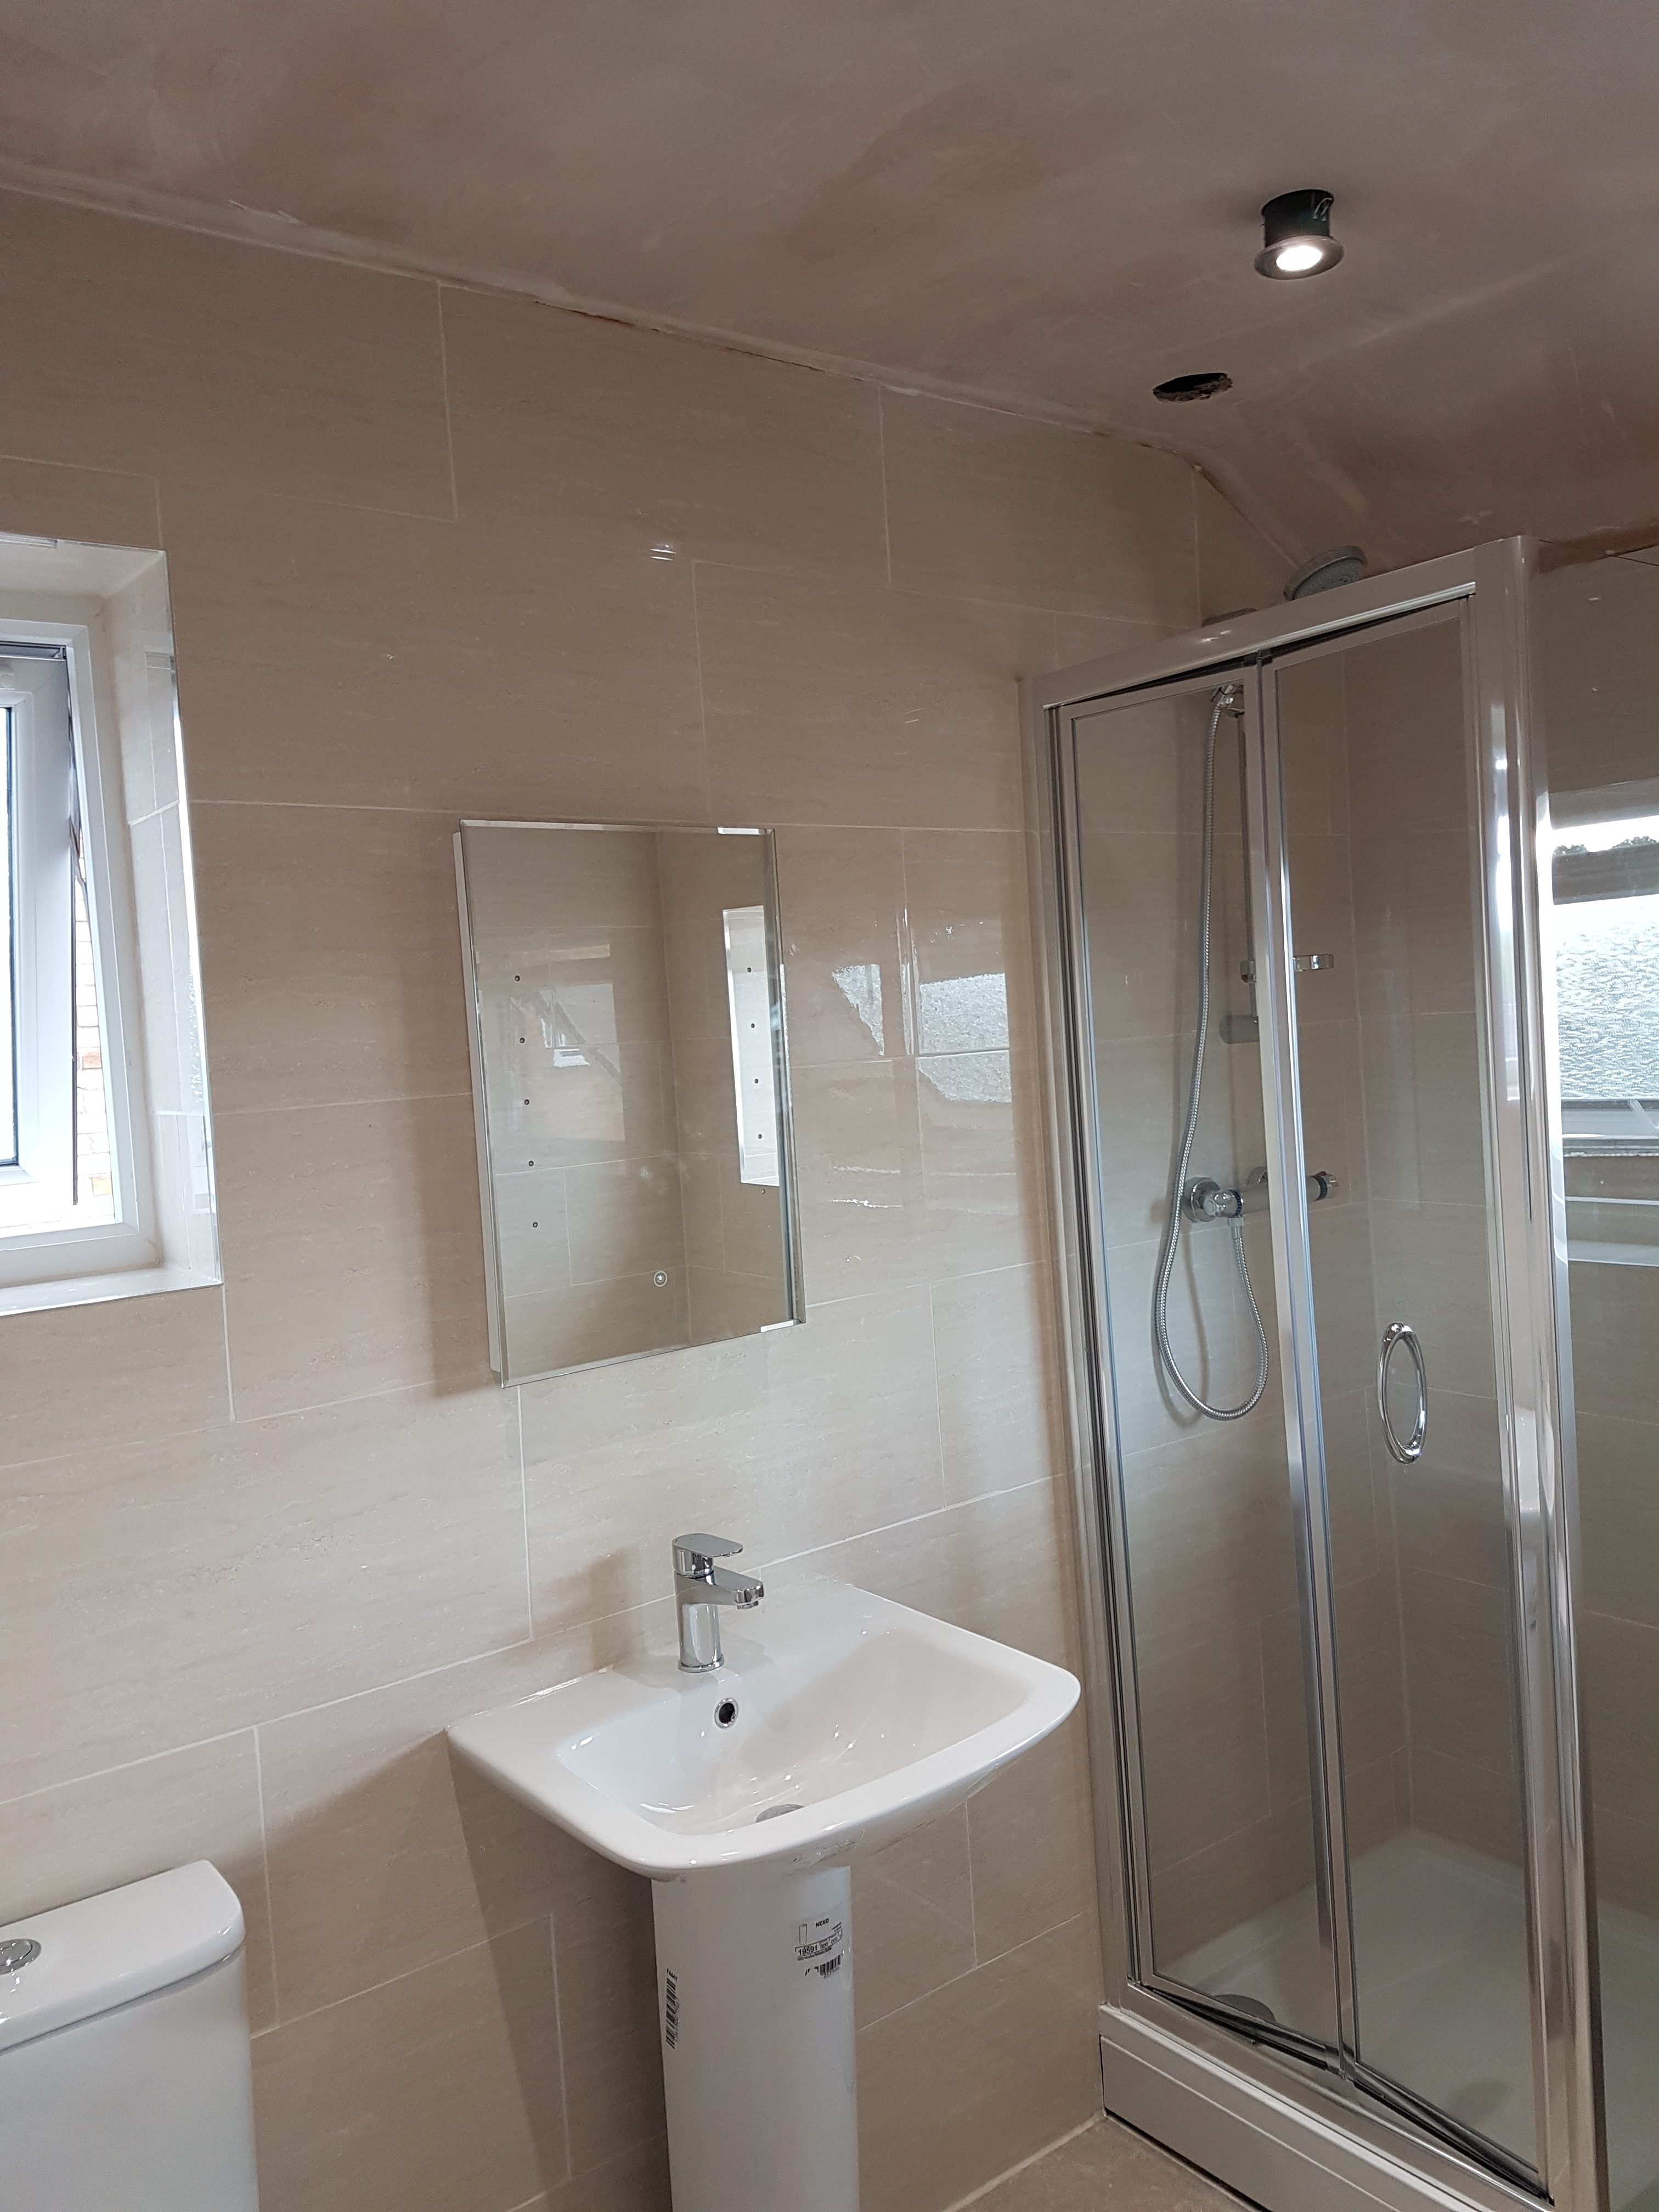 Gallery bathrooms 2Projects Gallery   KS Contractors. Gallery Kitchens And Bathrooms Runcorn. Home Design Ideas